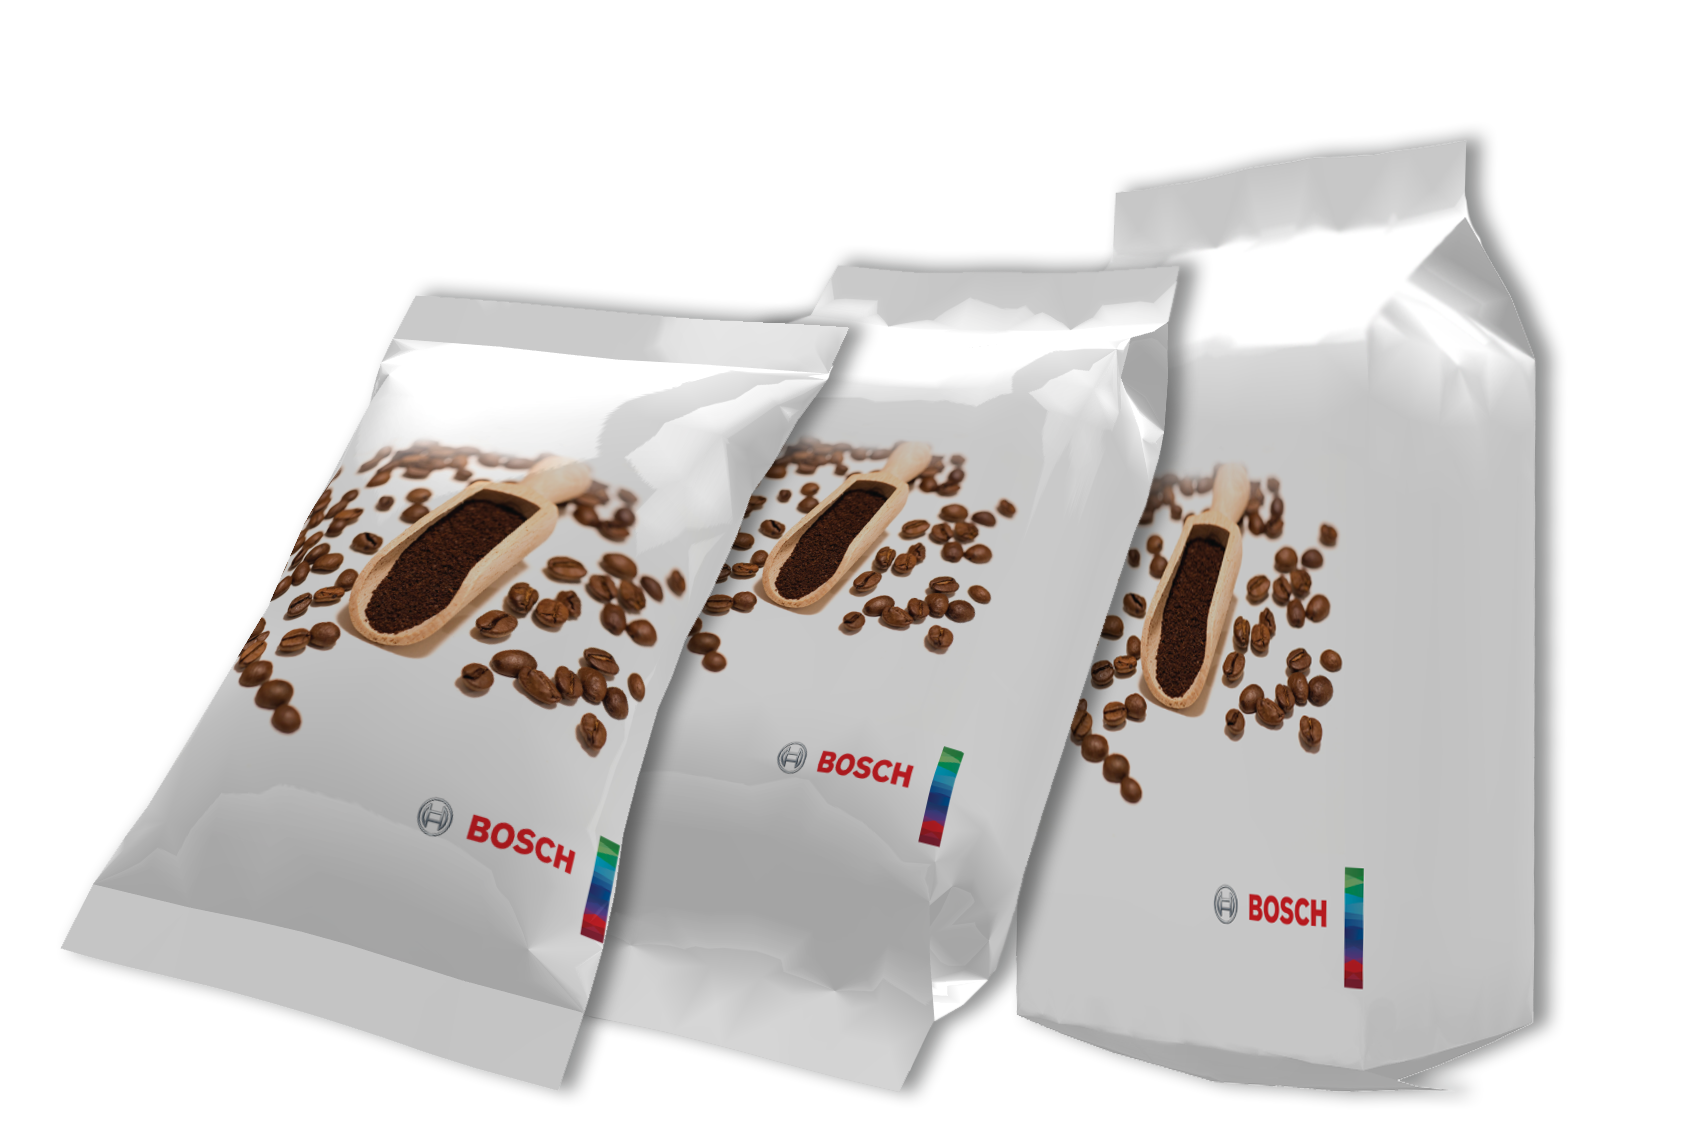 Transparent packaging coffee. Bosch launches efficient vertical